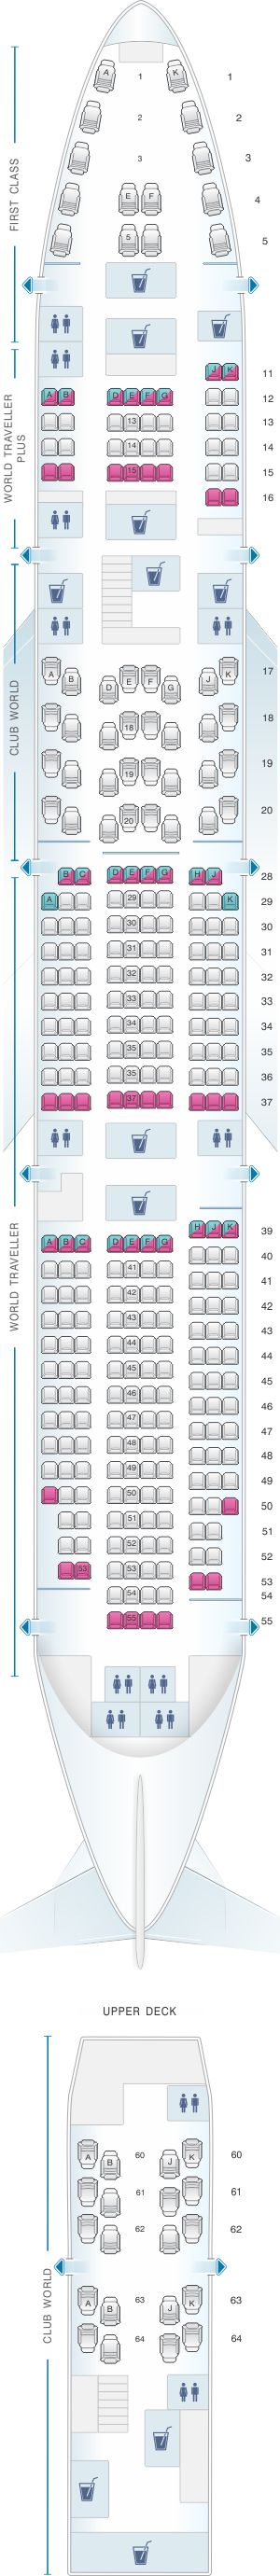 Seat Map British Airways Boeing B747 400 345PAX